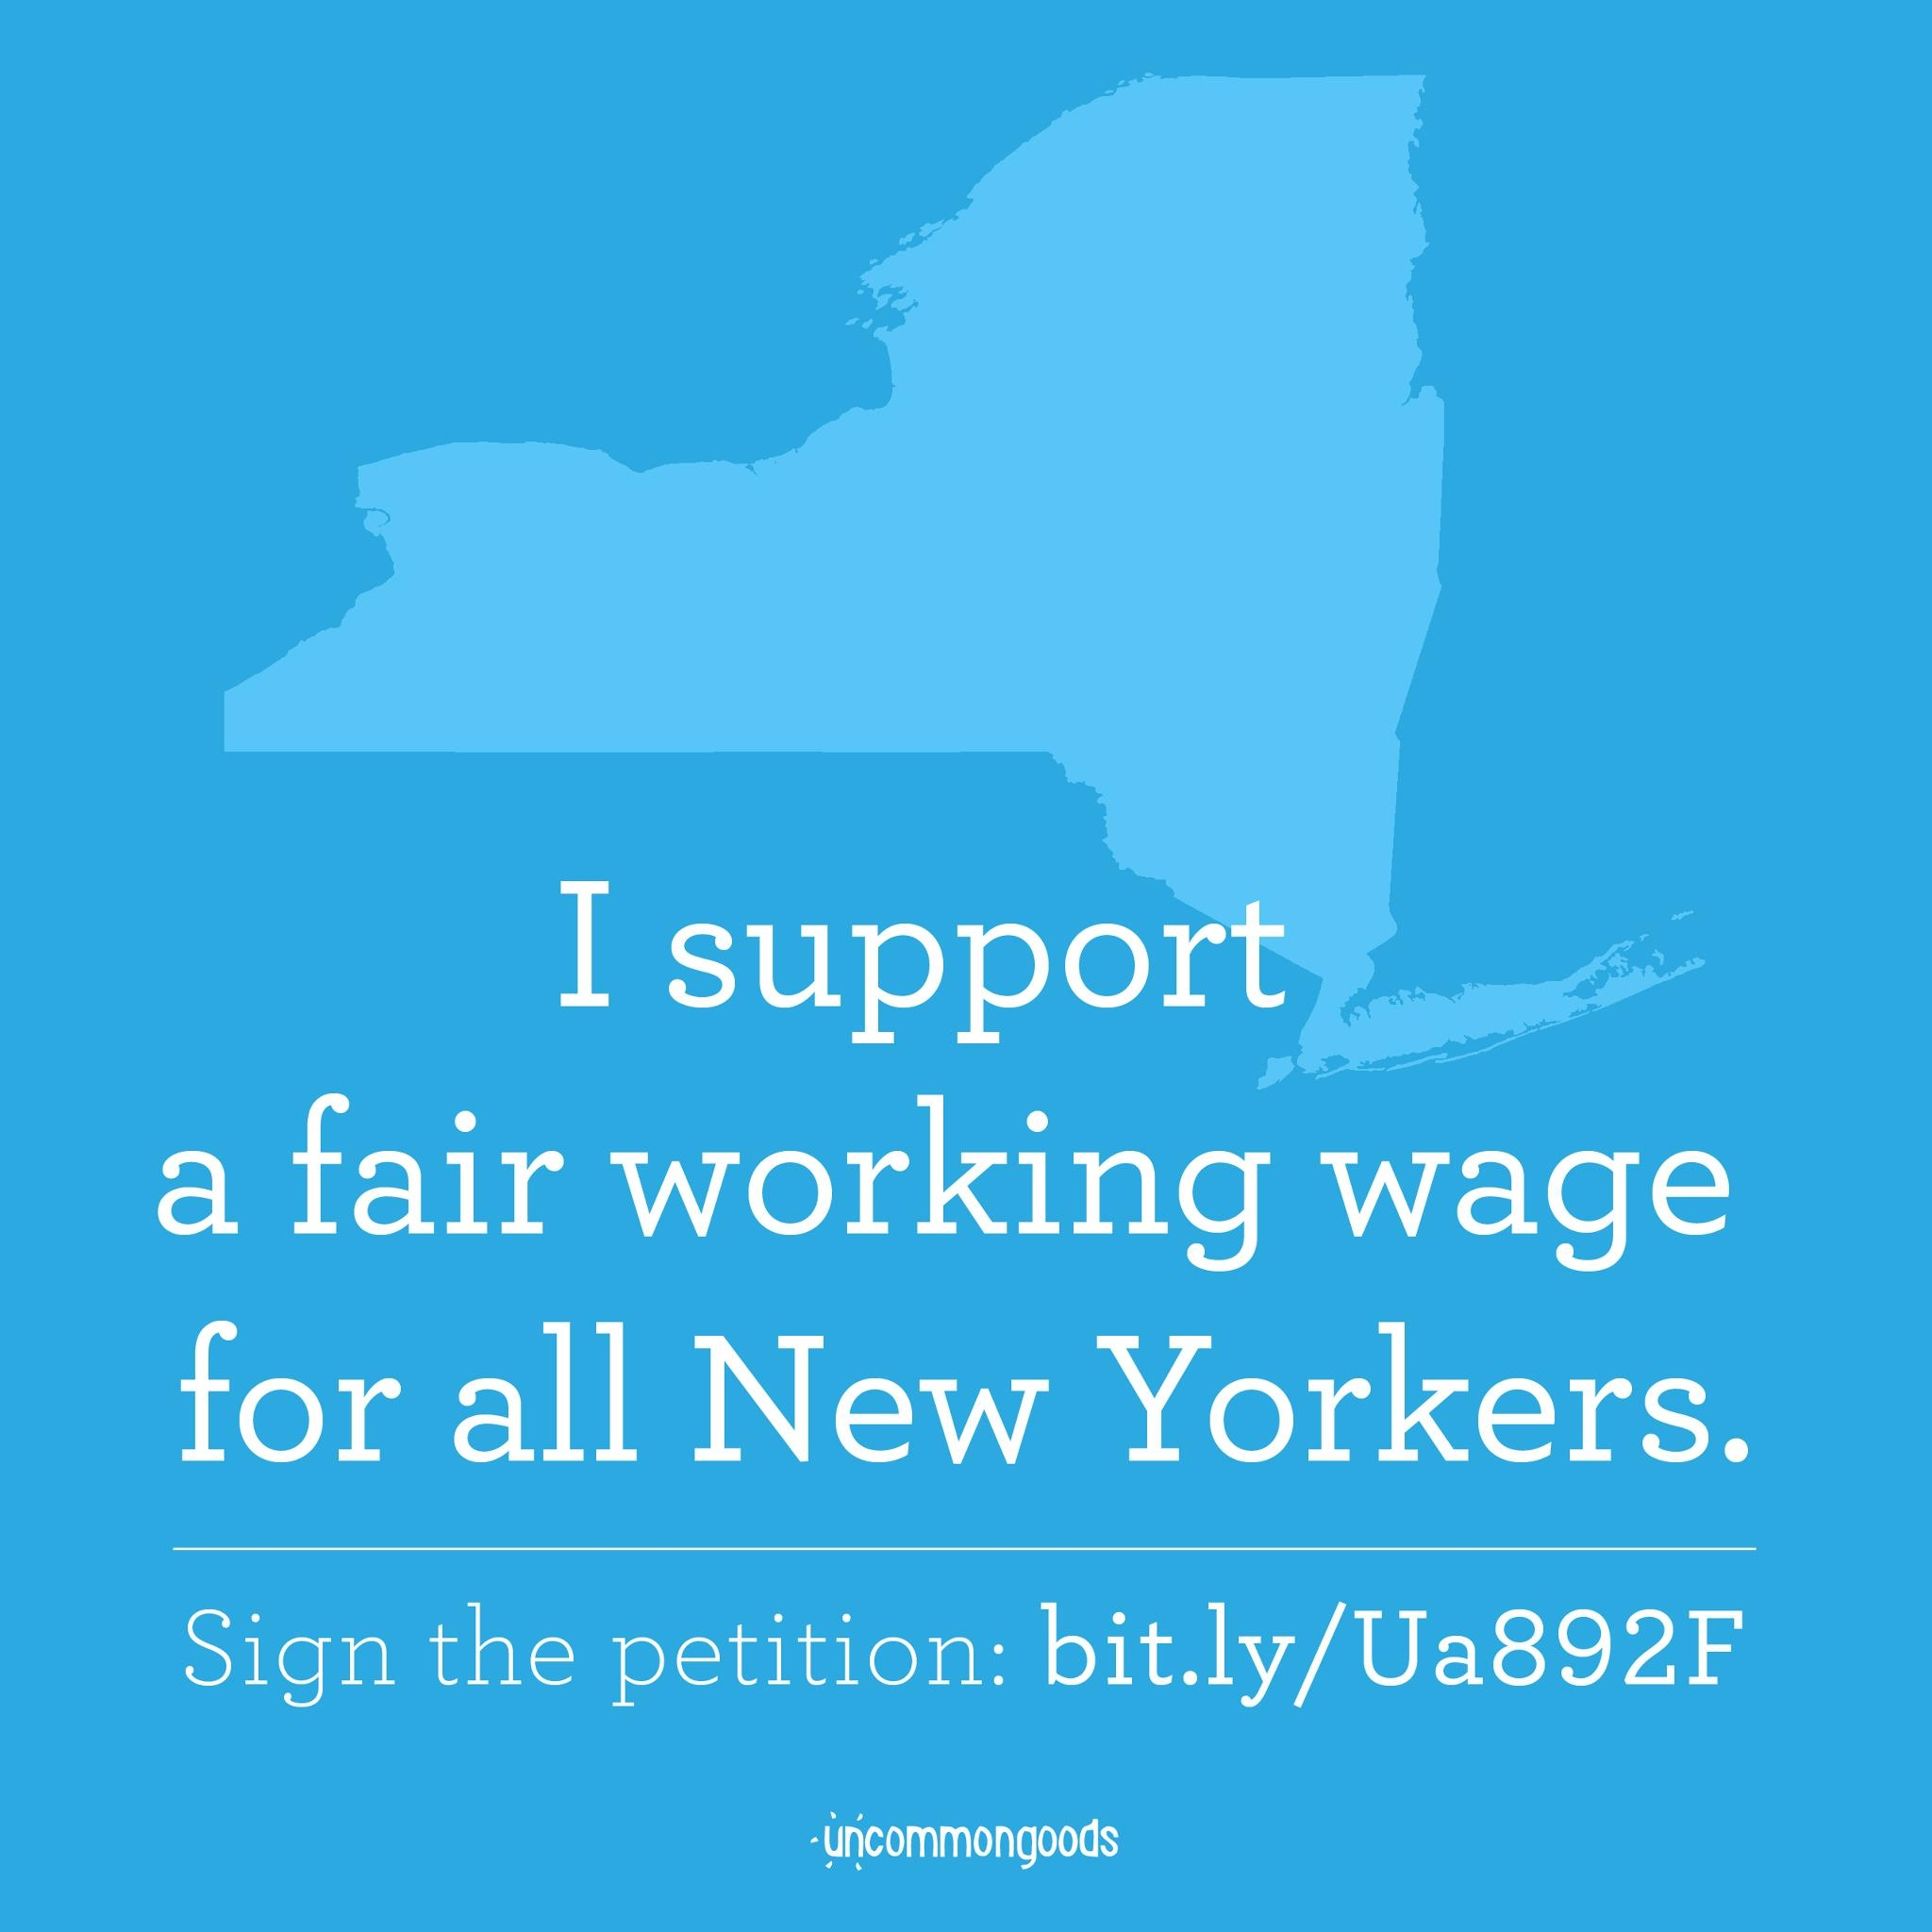 I Support a Fair Wage for All New Yorkers